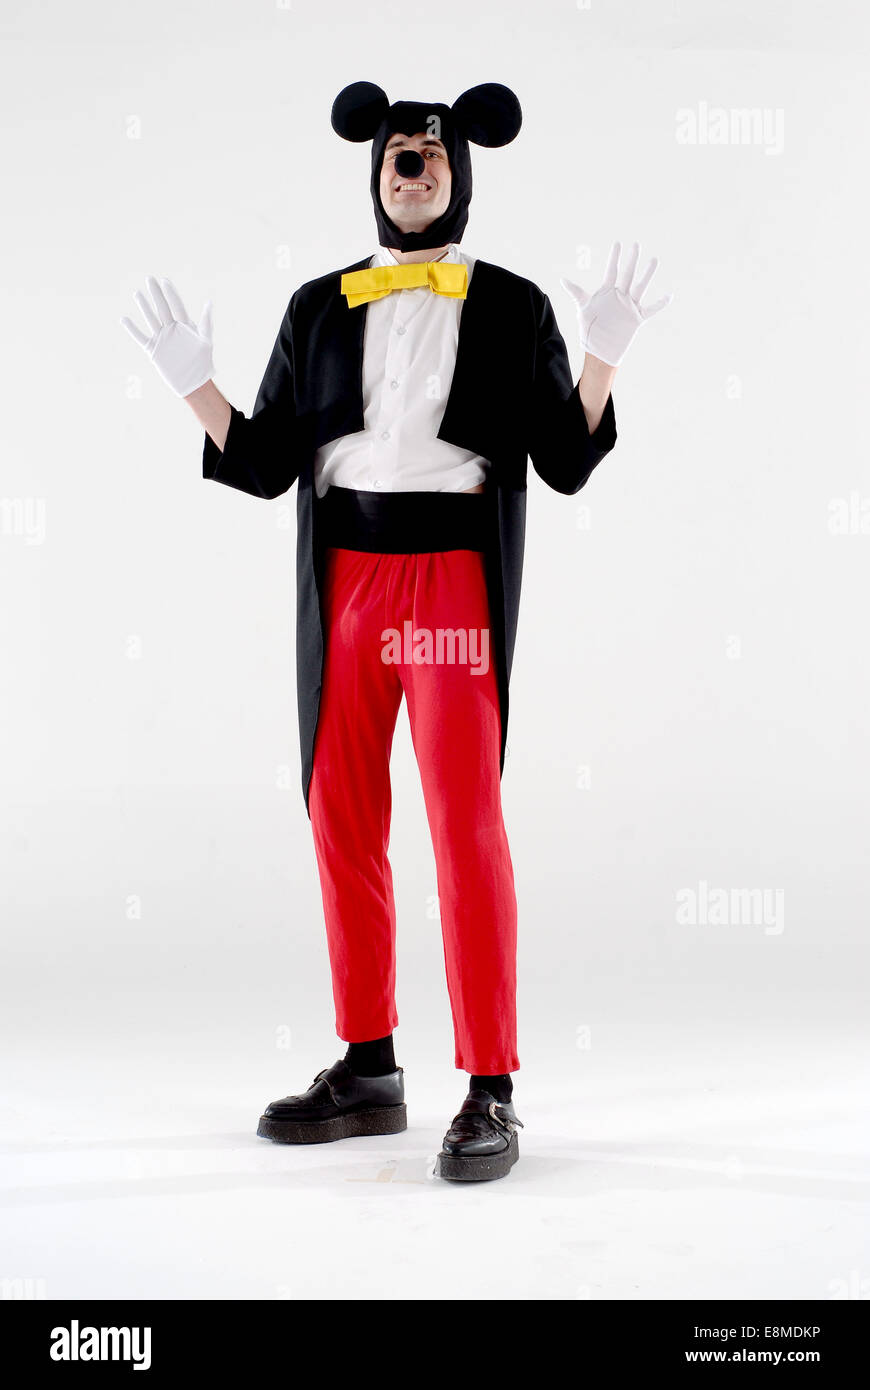 Man dressed in fancy dress comedy costume as mickey mouse disney character in a white studio with mickey mouse ears gloves  sc 1 st  Alamy & Man dressed in fancy dress comedy costume as mickey mouse disney ...